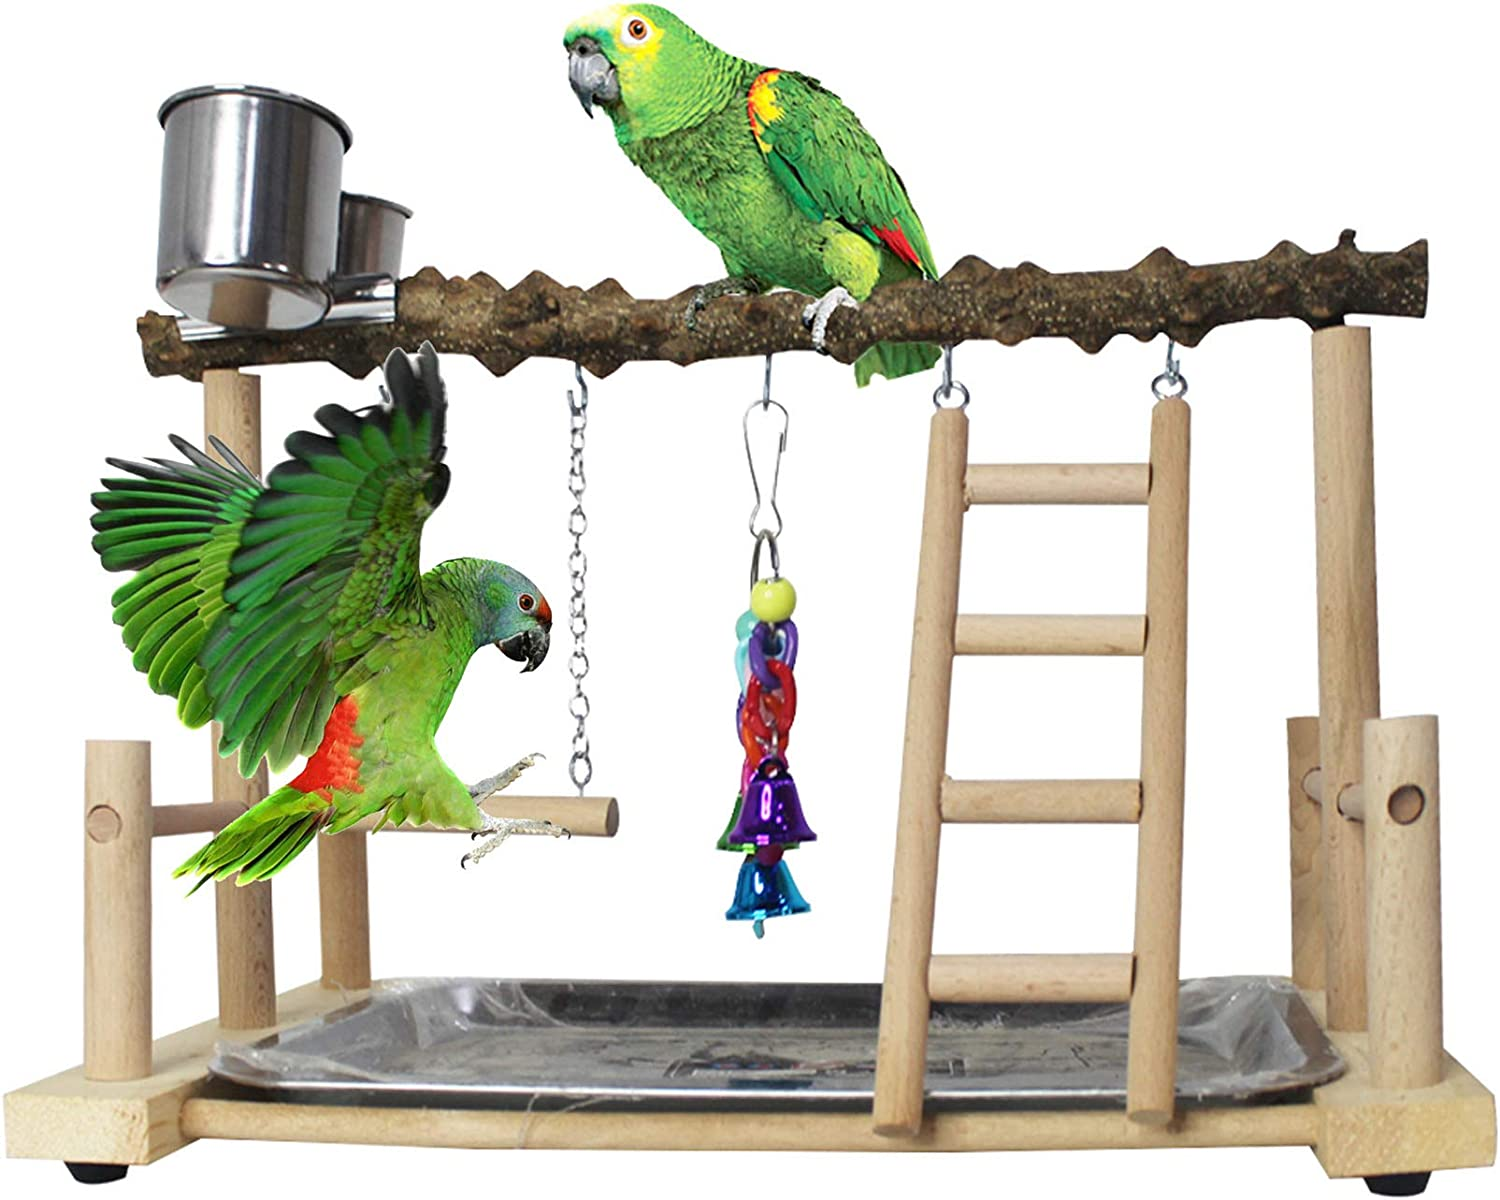 PINVNBY Bird Playground Birdcage Playstand Pet Bird Perch Platform Stand Parrot Play Gym Parakeet Cage Decor Budgie Perch Stand with Feeder Seed Cups Ladder Chew Toys for Small Animals Parrot Parakeet : Pet Supplies